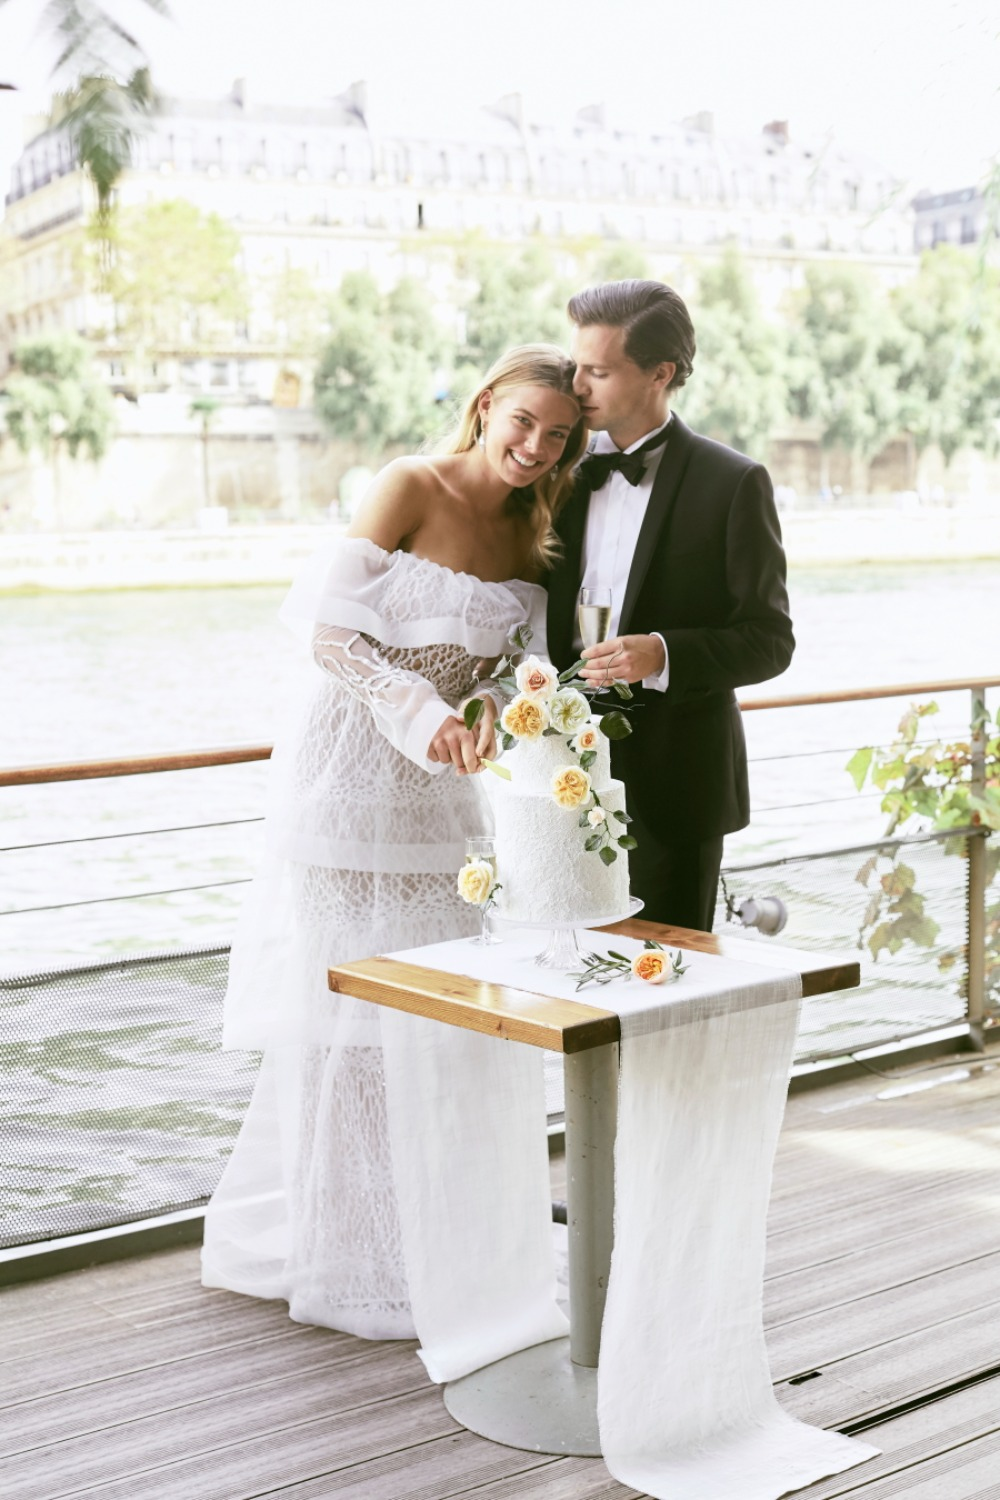 Romantic wedding inspo in Paris